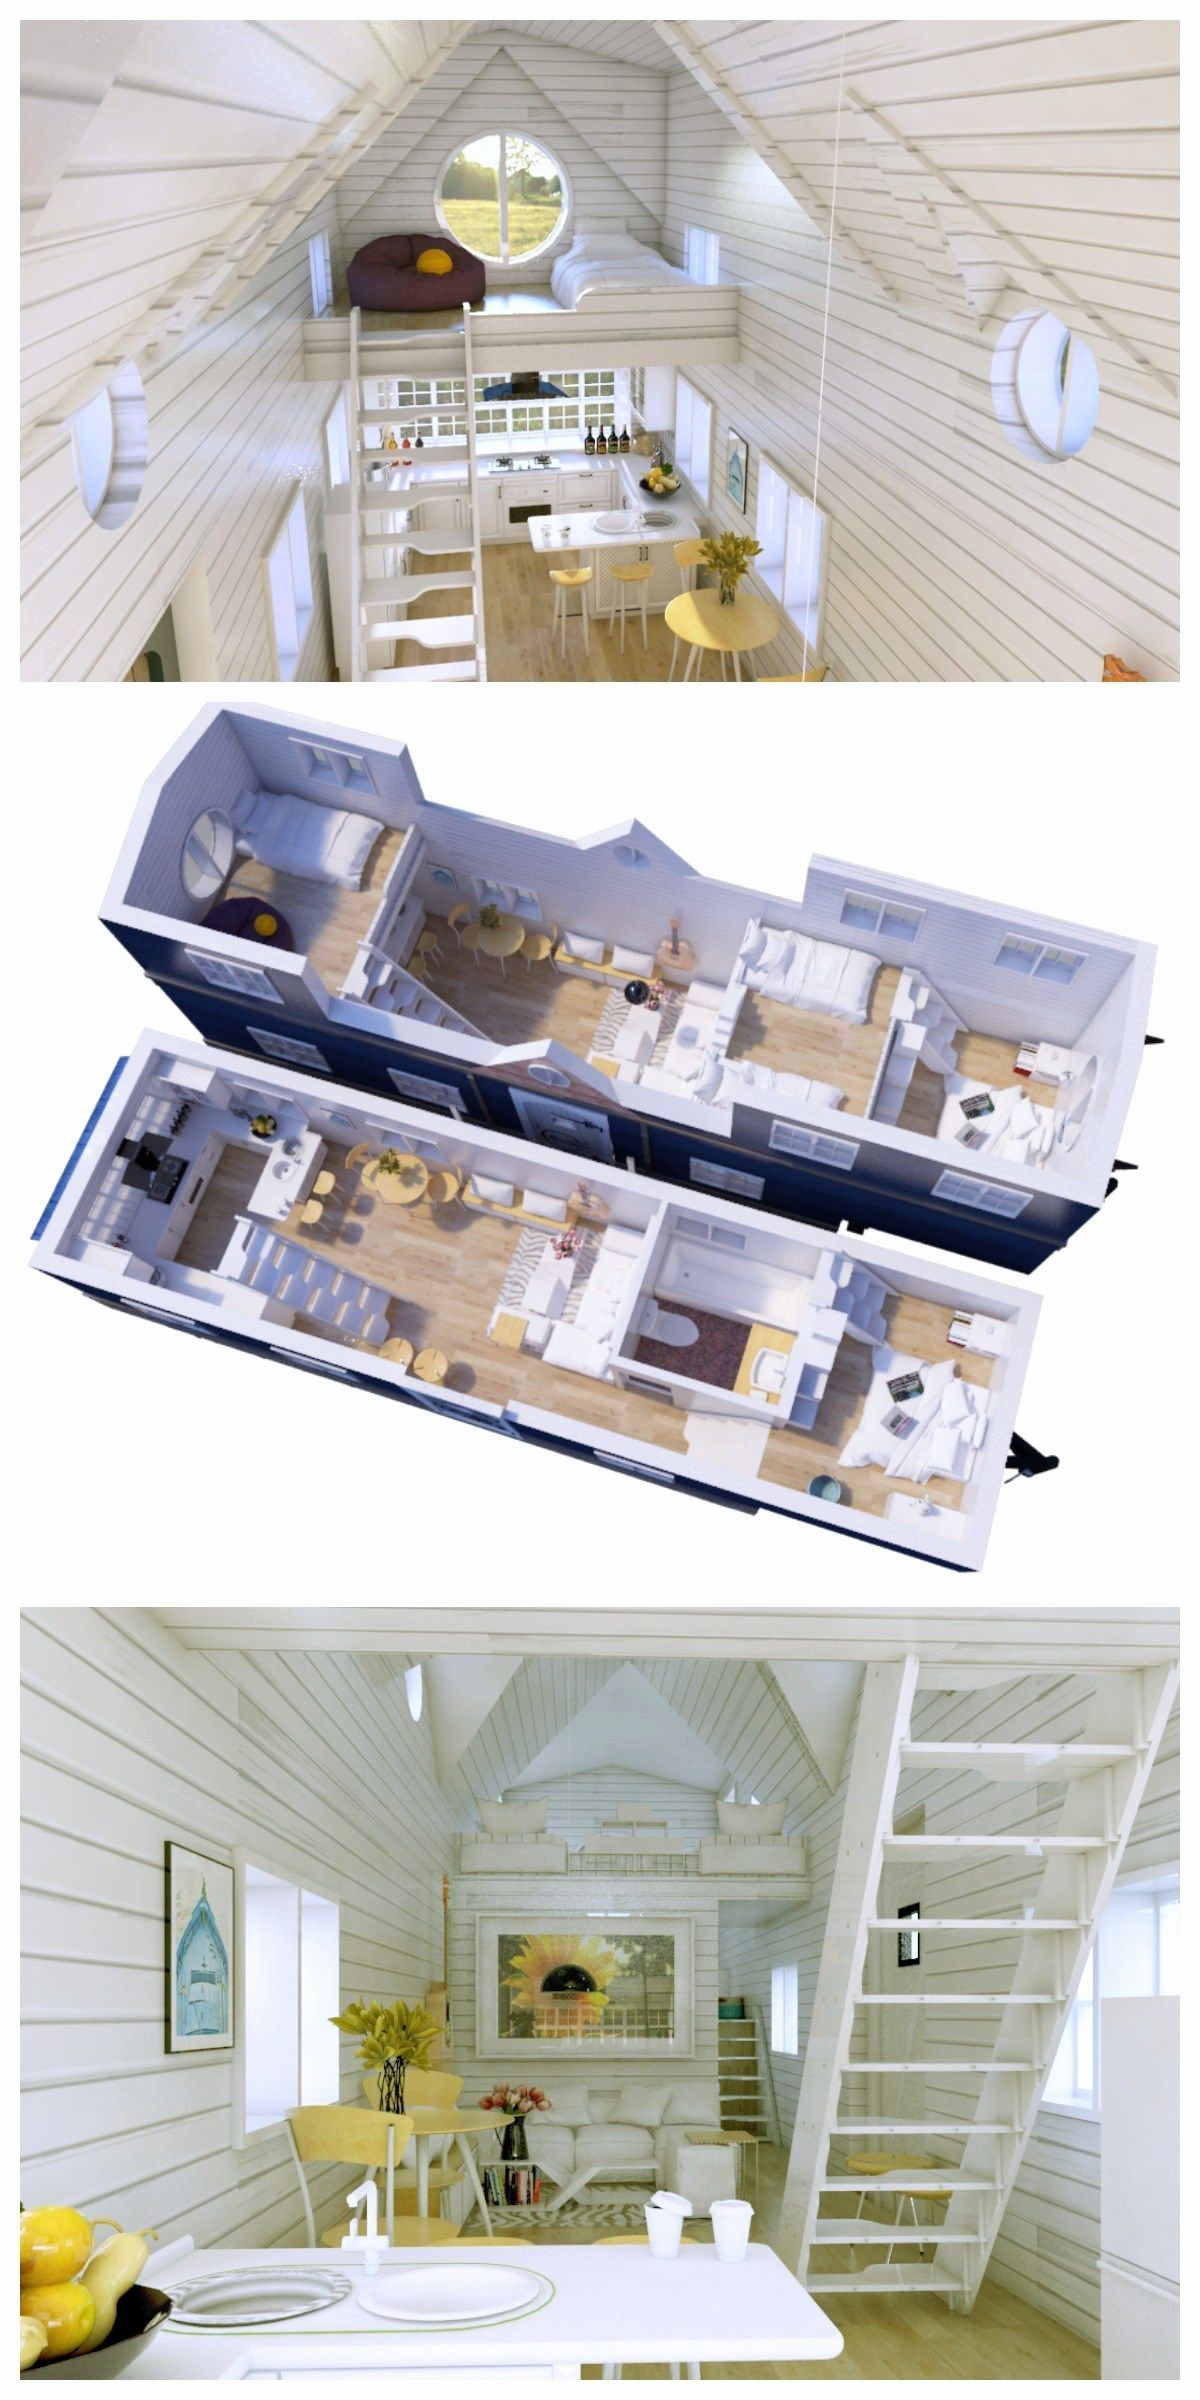 3 Bedroom Tiny House Plans Best Of Split Level Gooseneck Tiny House Cabin Tiny House Floor Plans Tiny House Layout